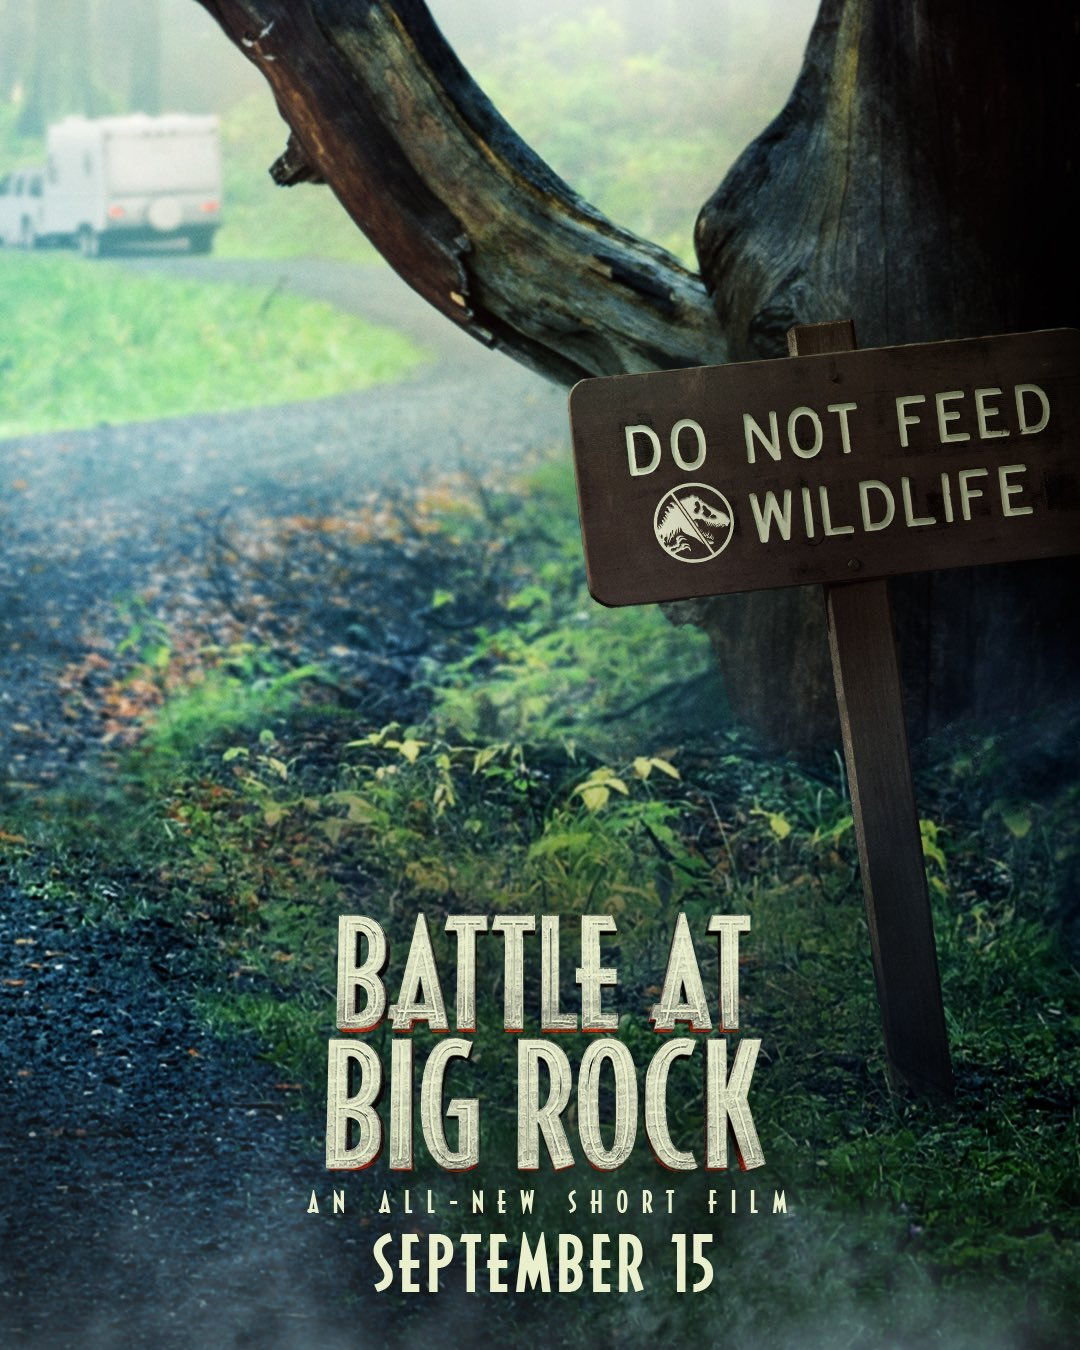 Battle at Big Rock: A Jurassic World Short Film